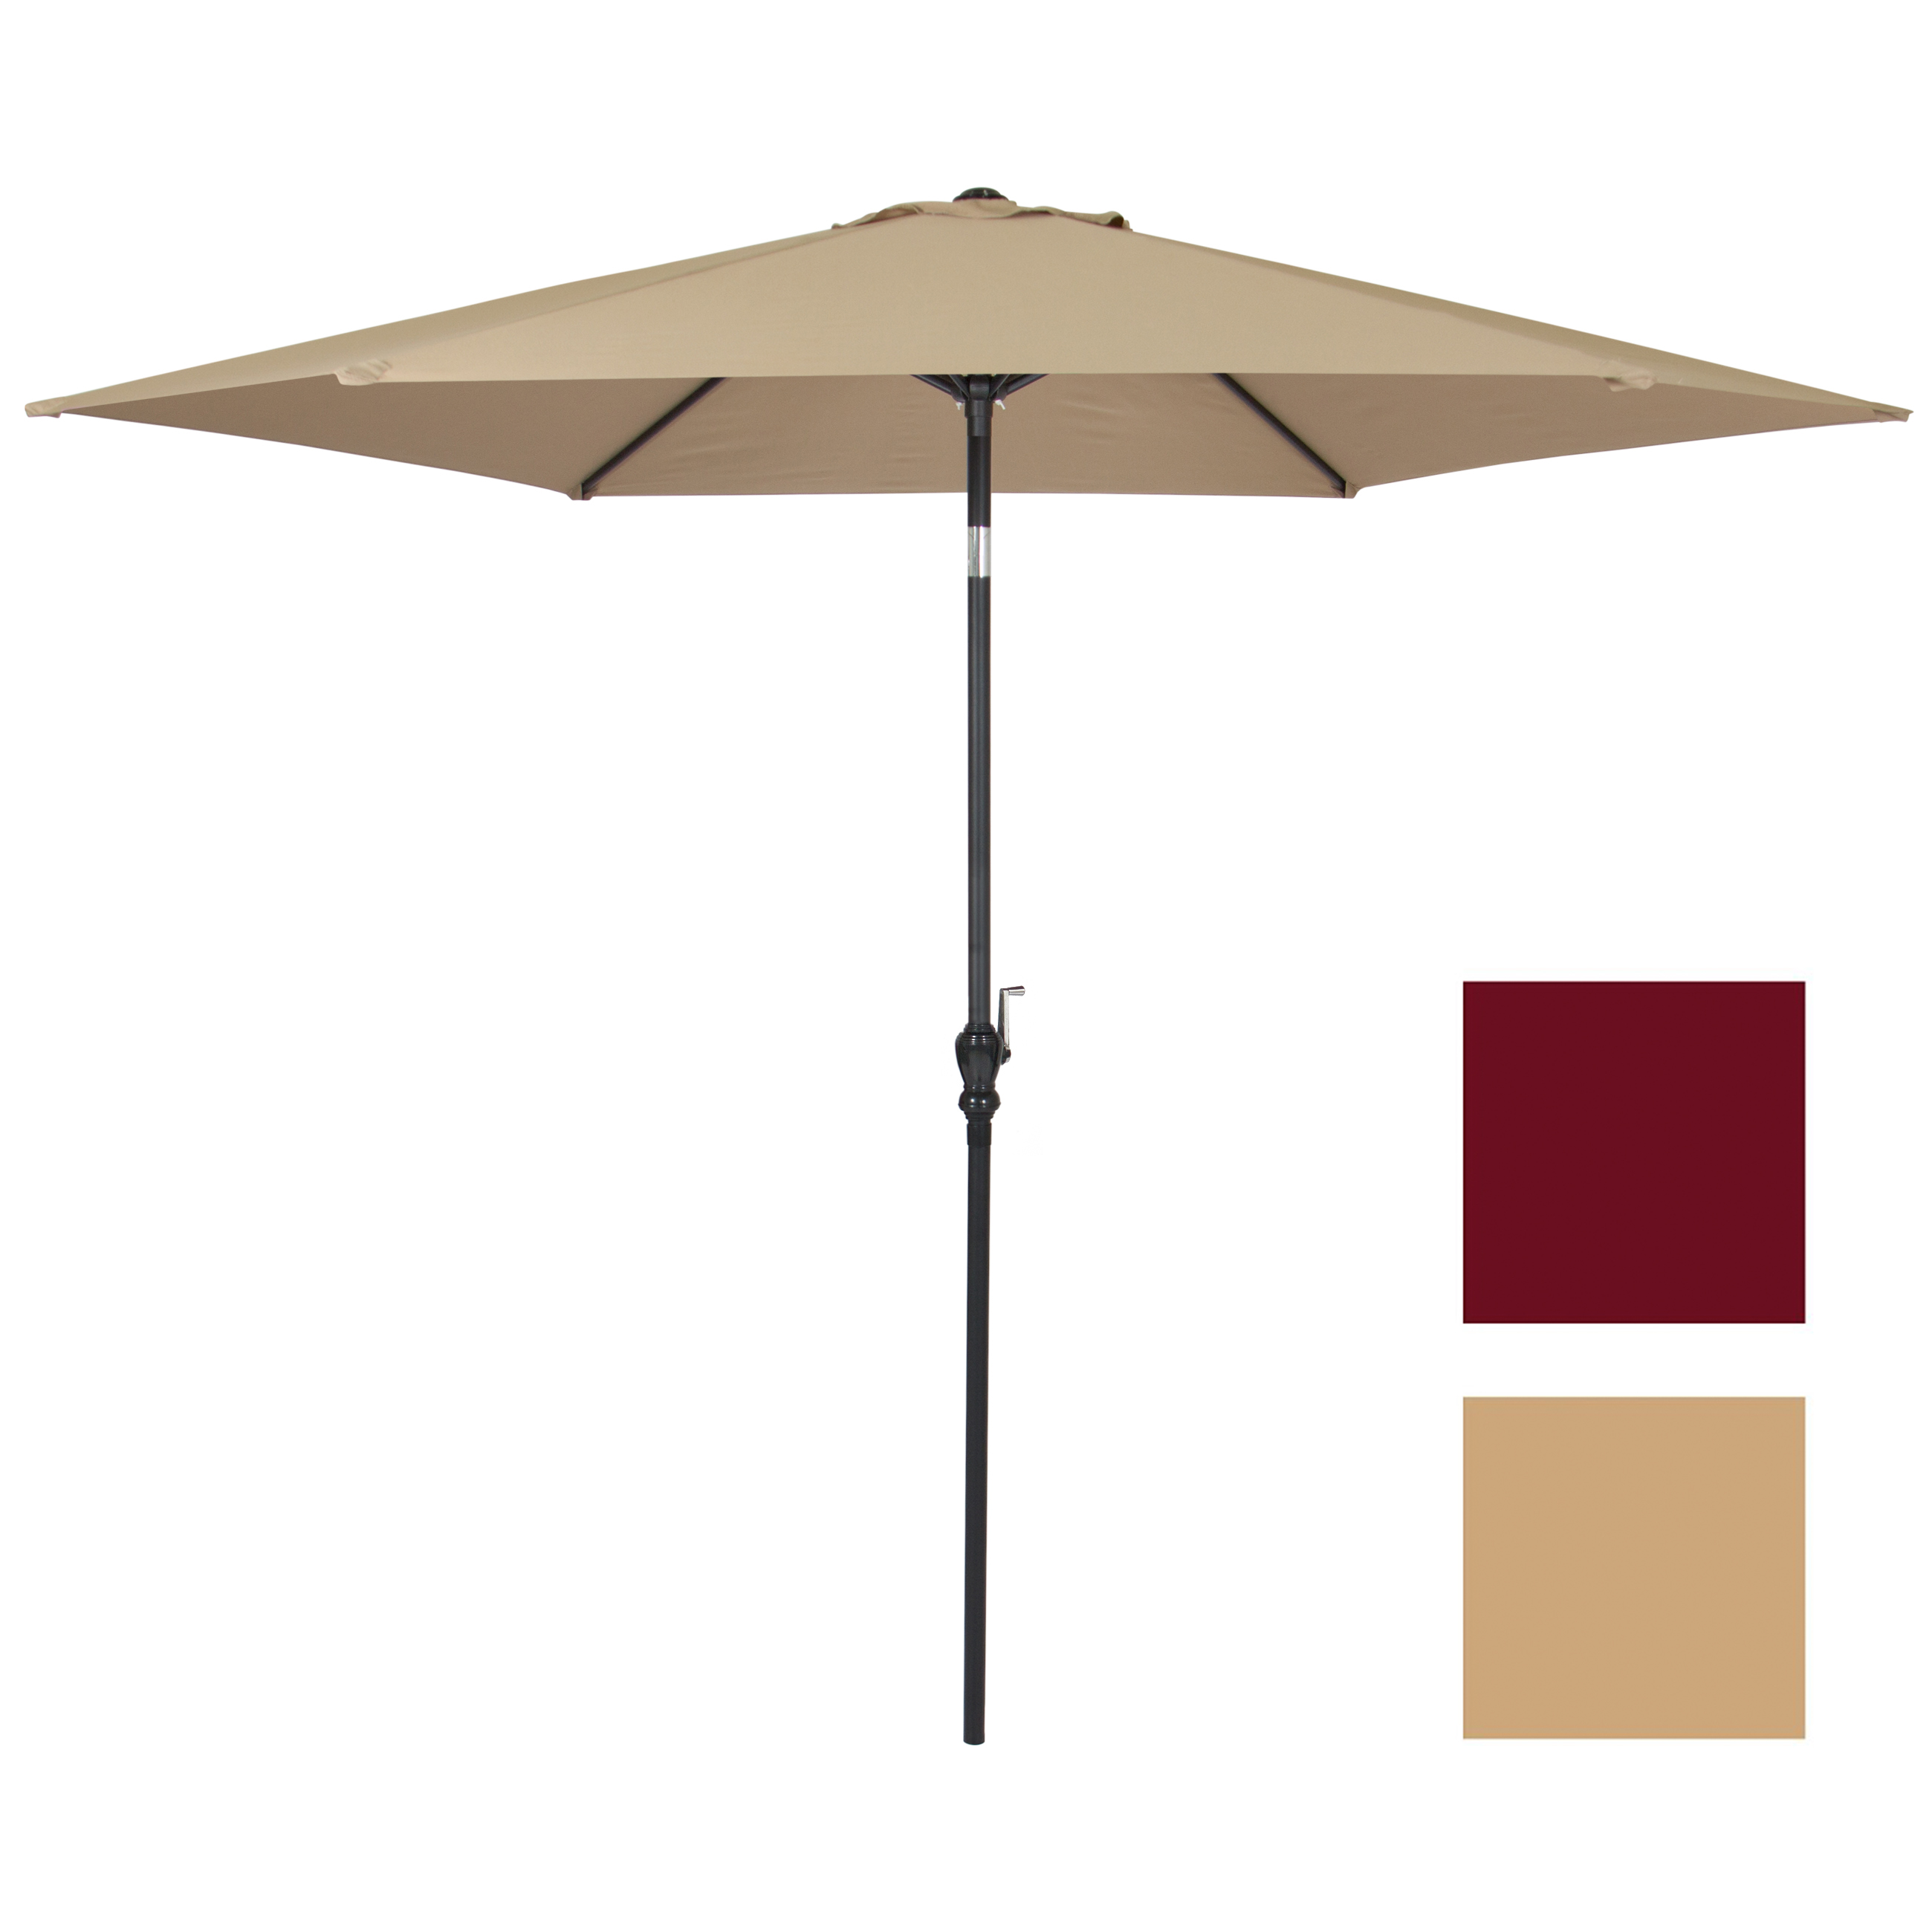 10 FT Steel Market Outdoor Patio Umbrella W/ Crank, Tilt Push Button